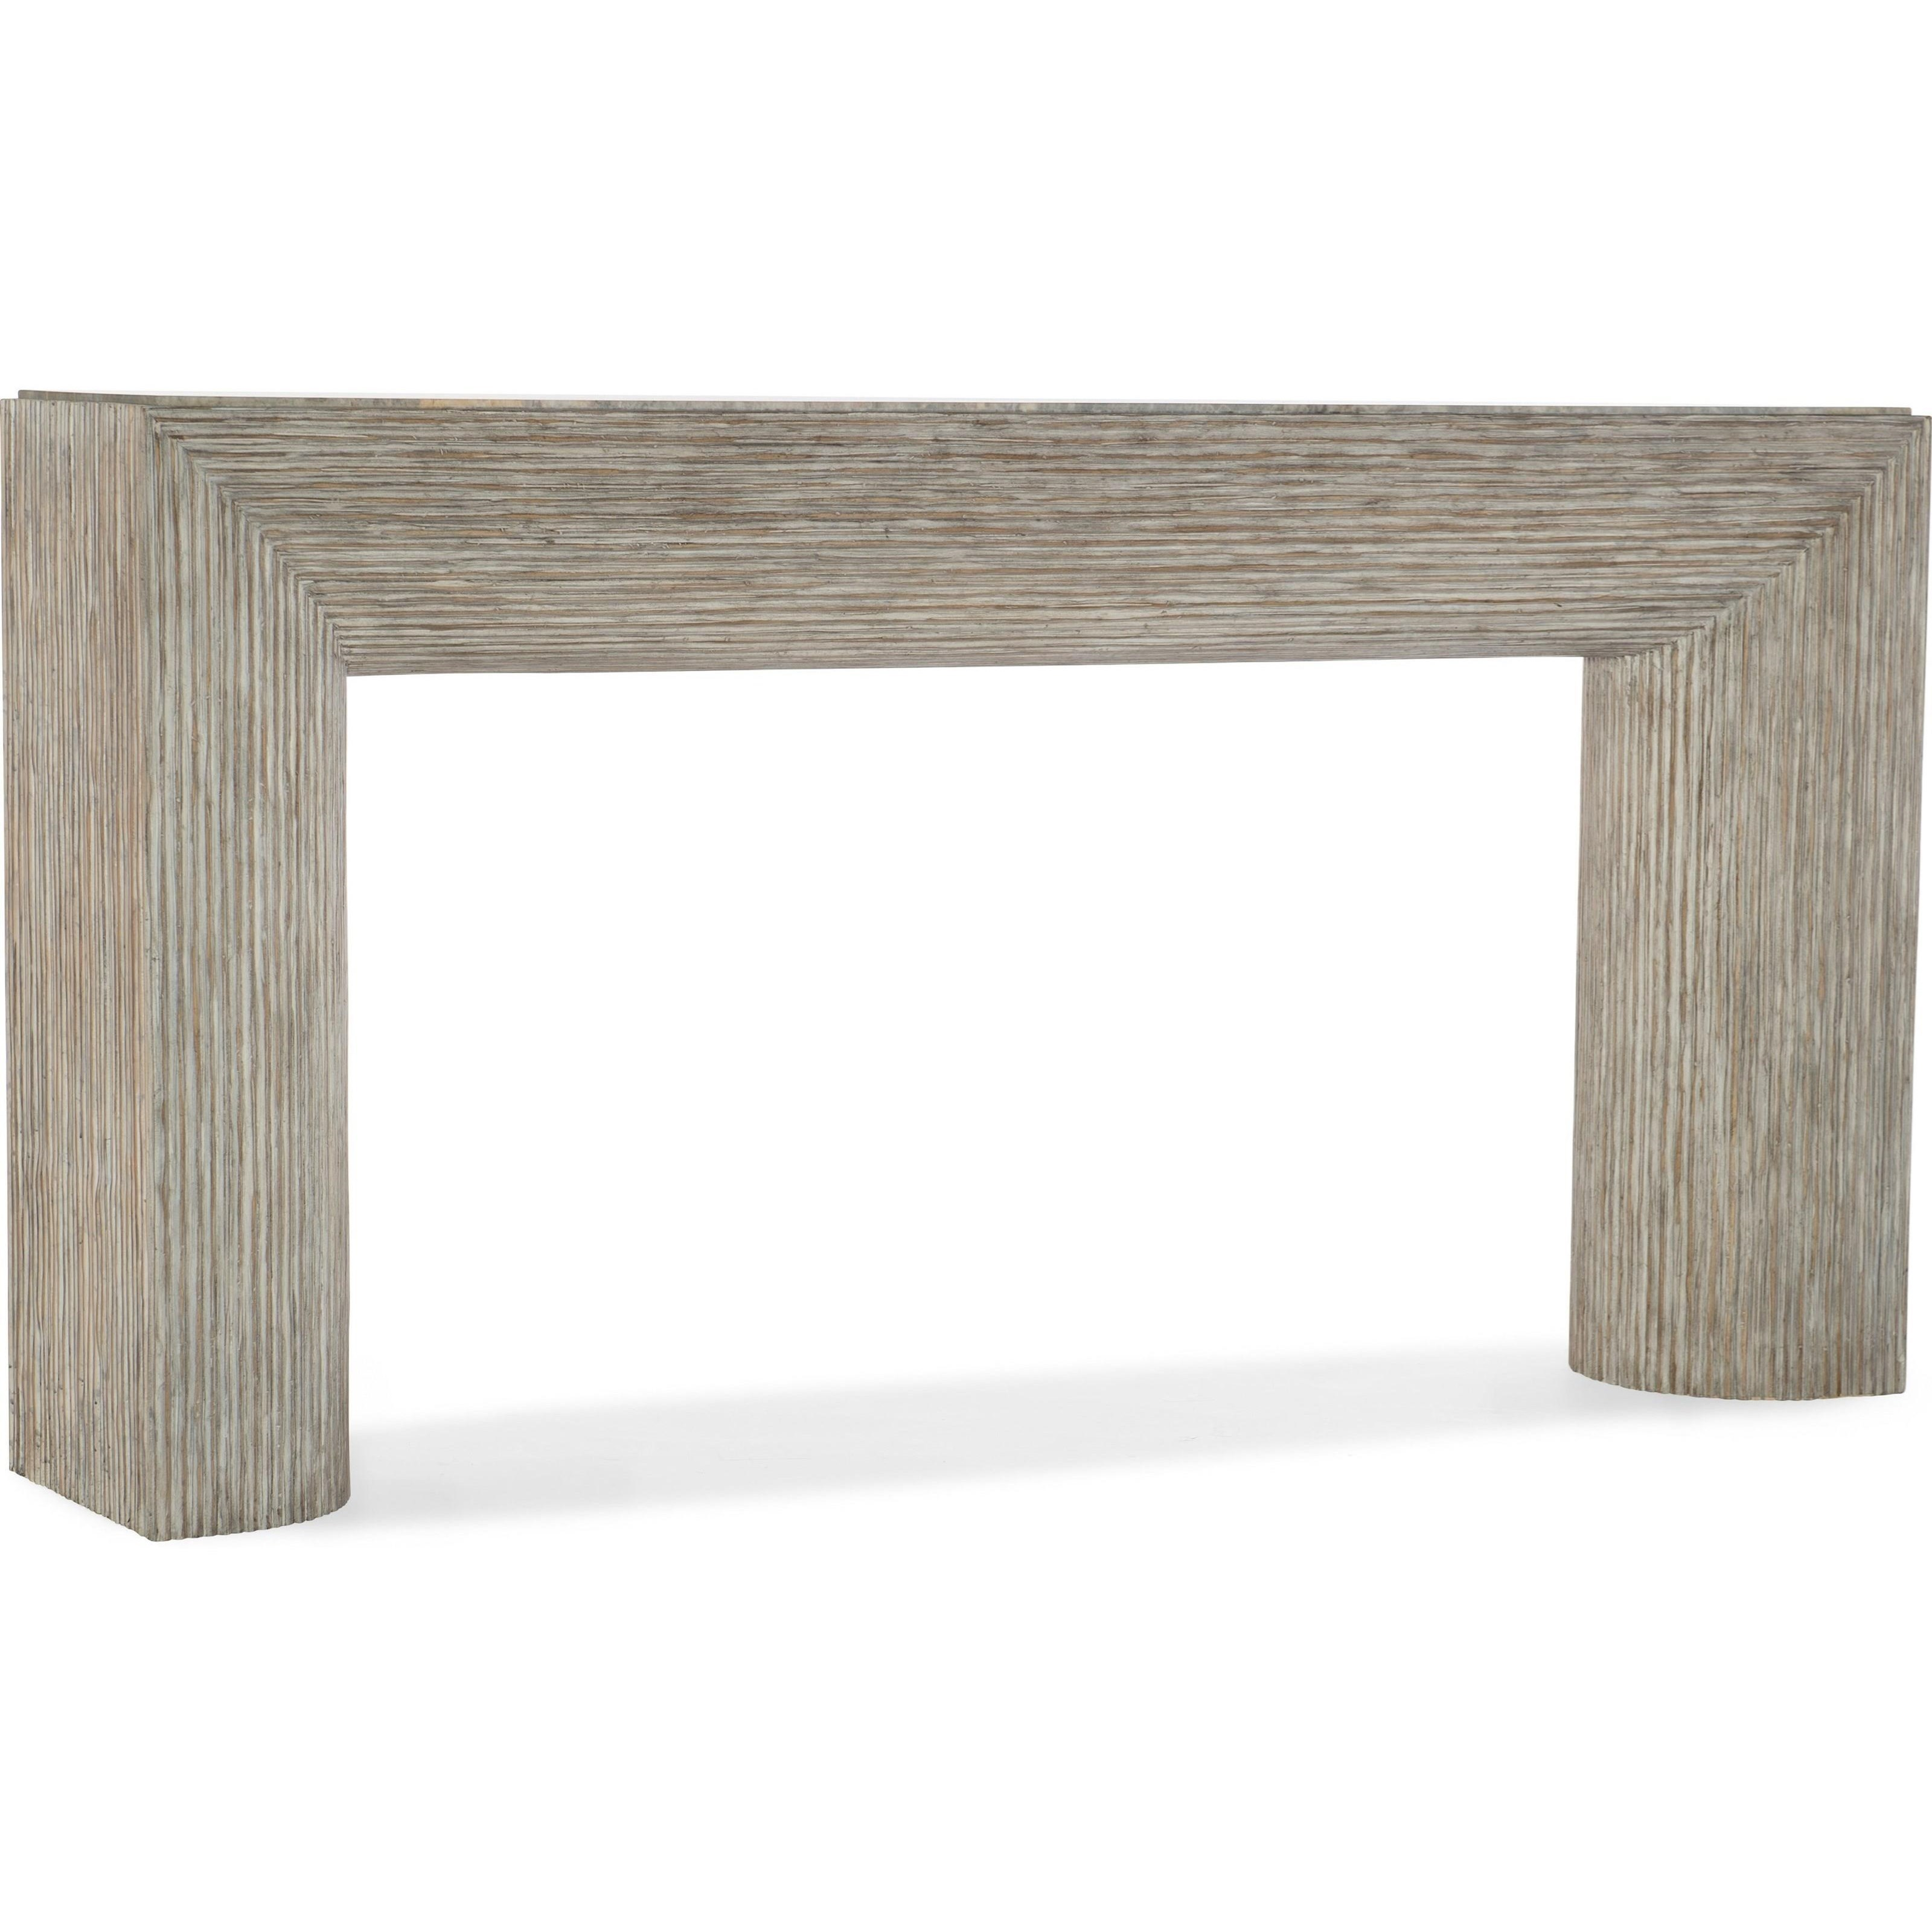 American Life-Amani Sofa Table by Hamilton Home at Sprintz Furniture